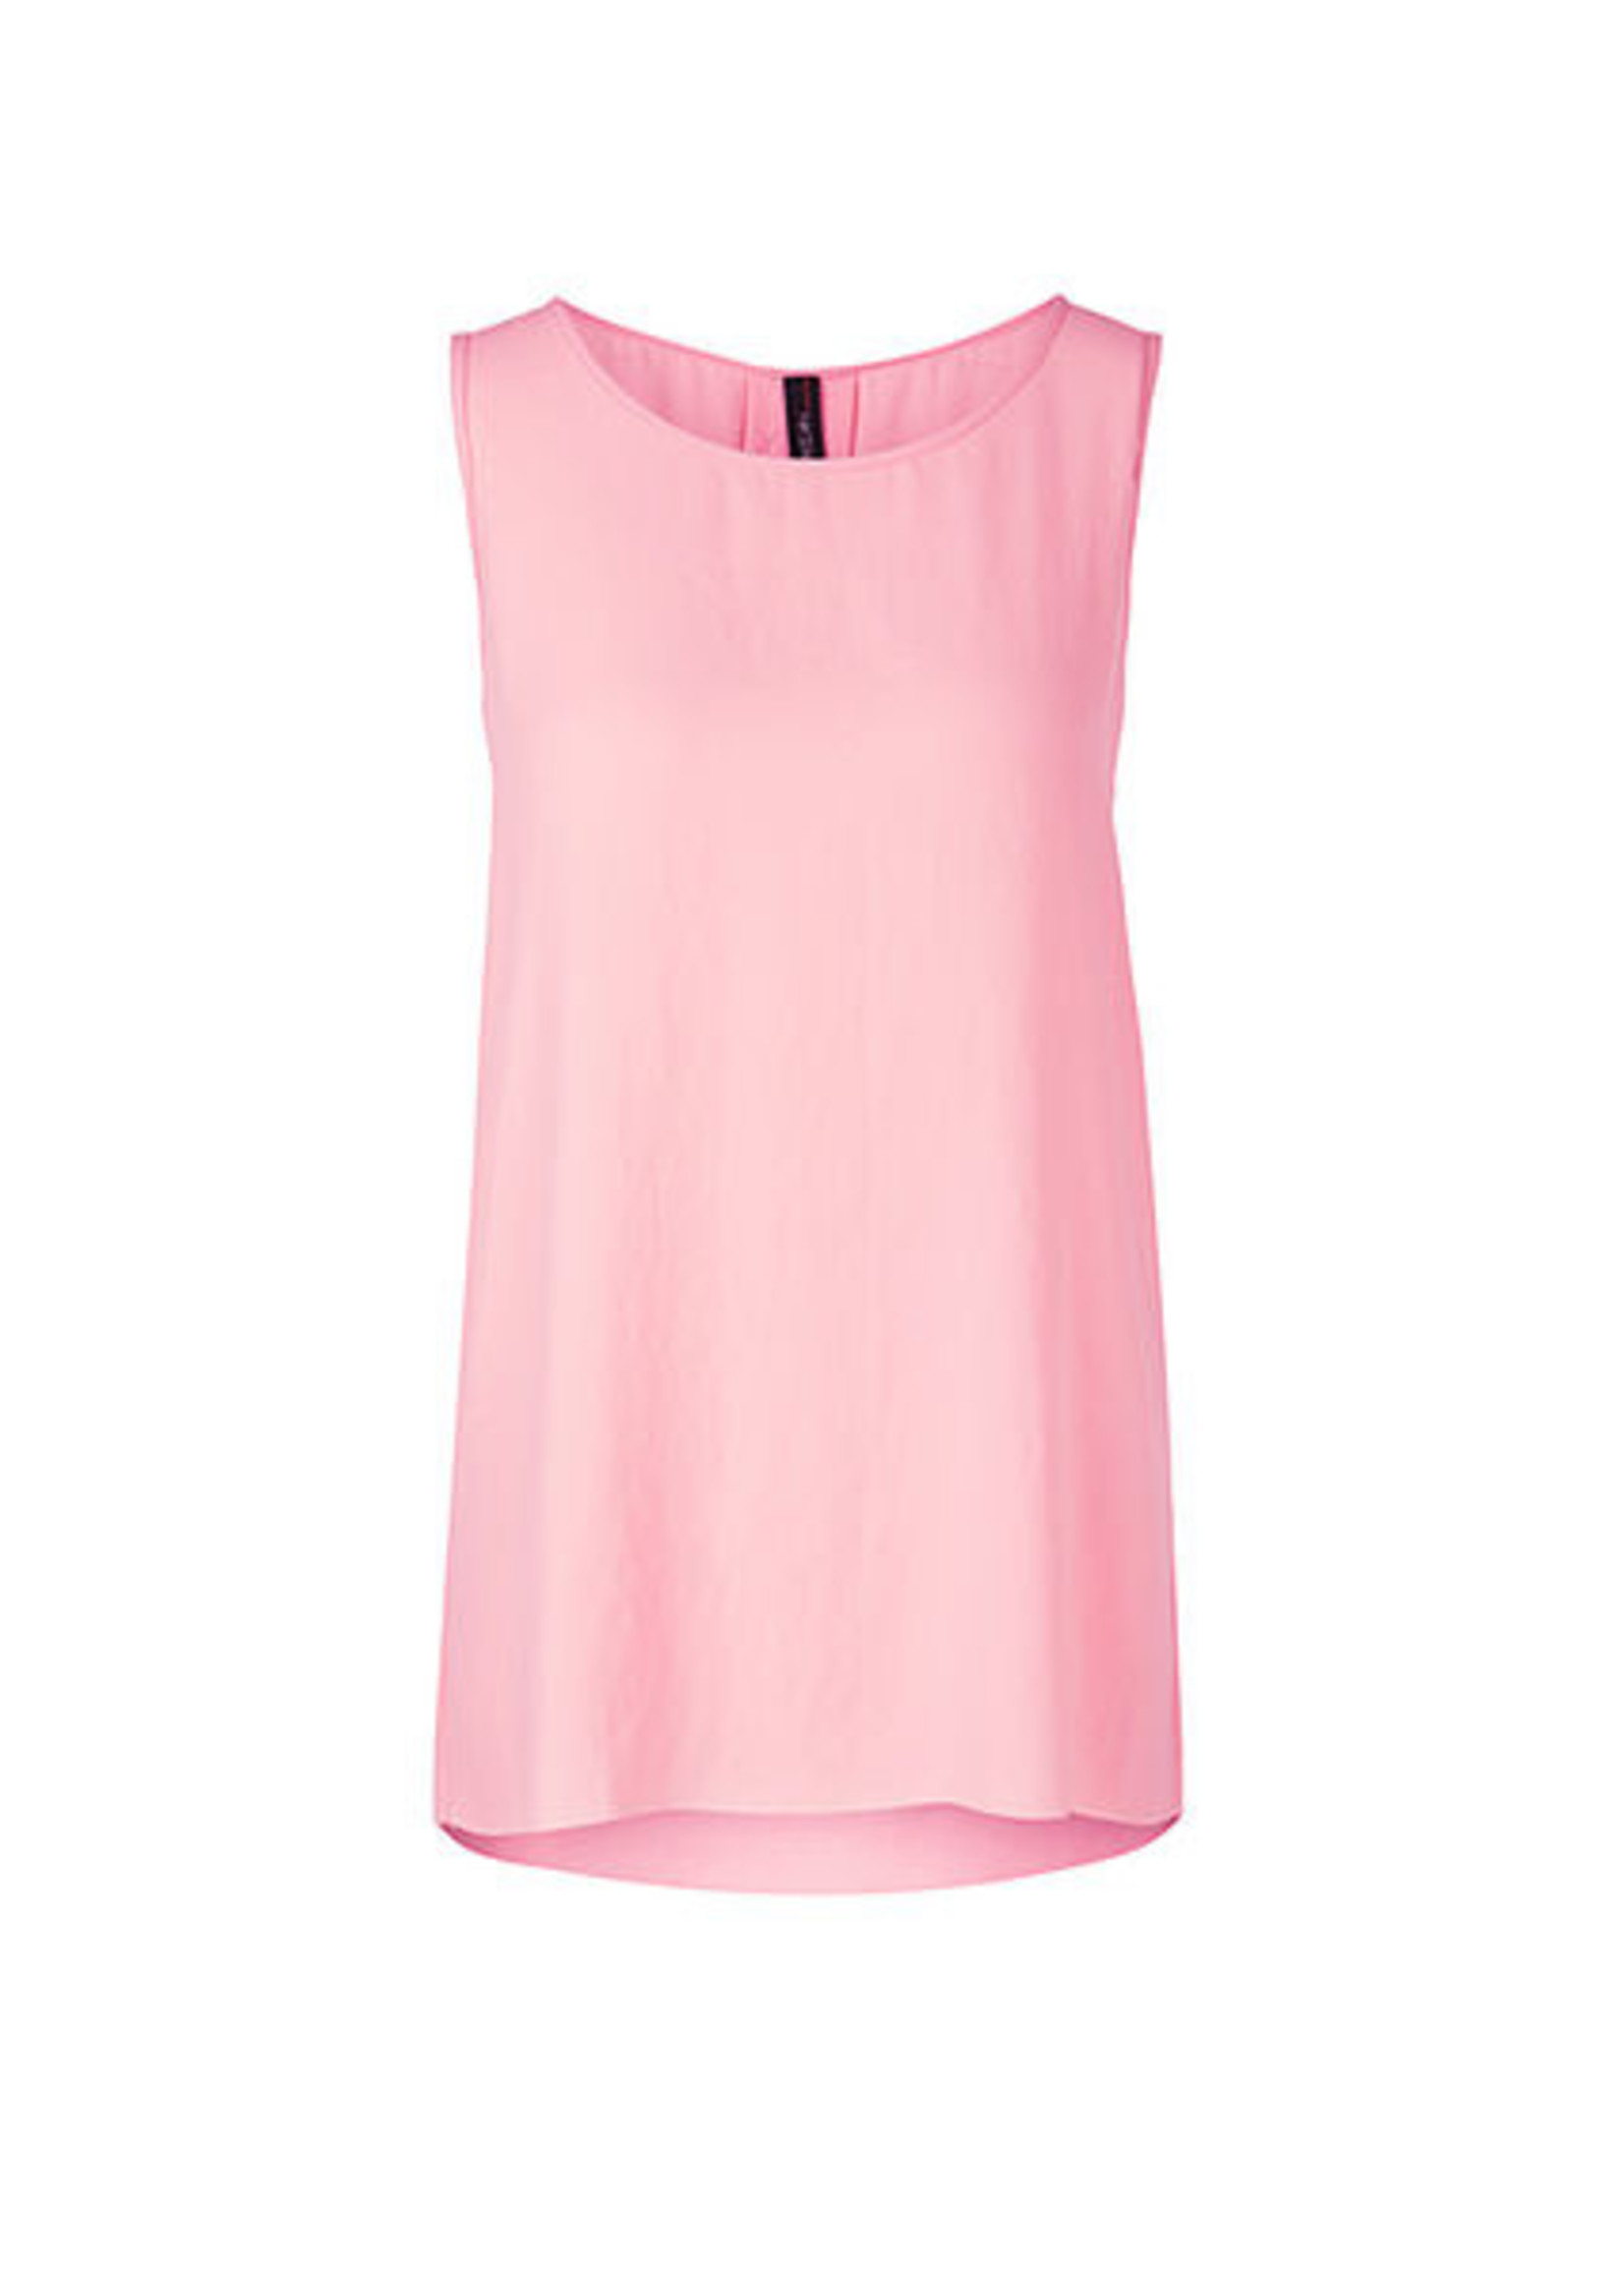 Marccain Sports Top RS 61.04 W41 coralblush